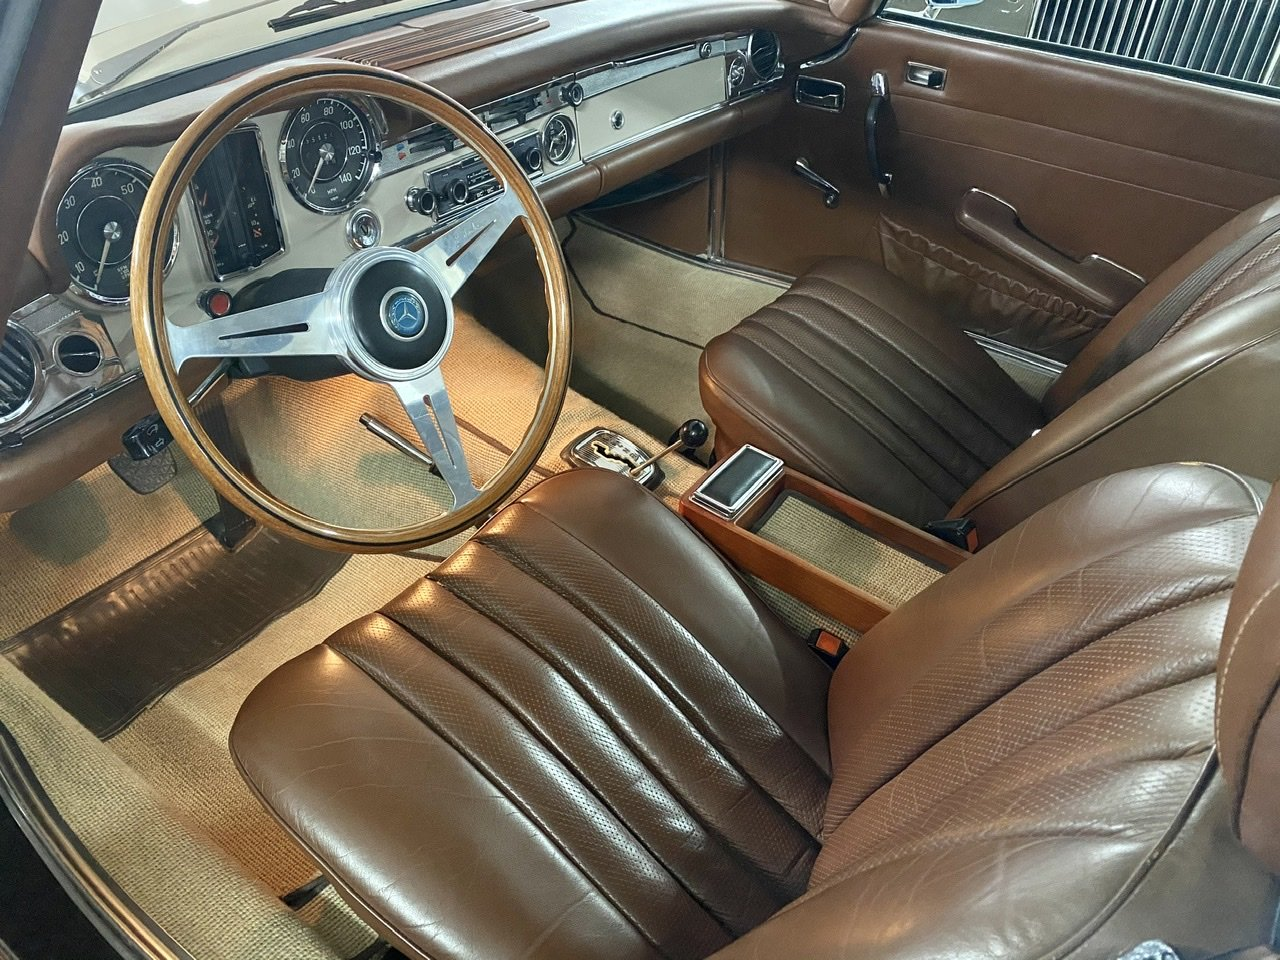 1970 Mercedes-Benz 280 SL 'Pagoda' For Sale (picture 3 of 24)